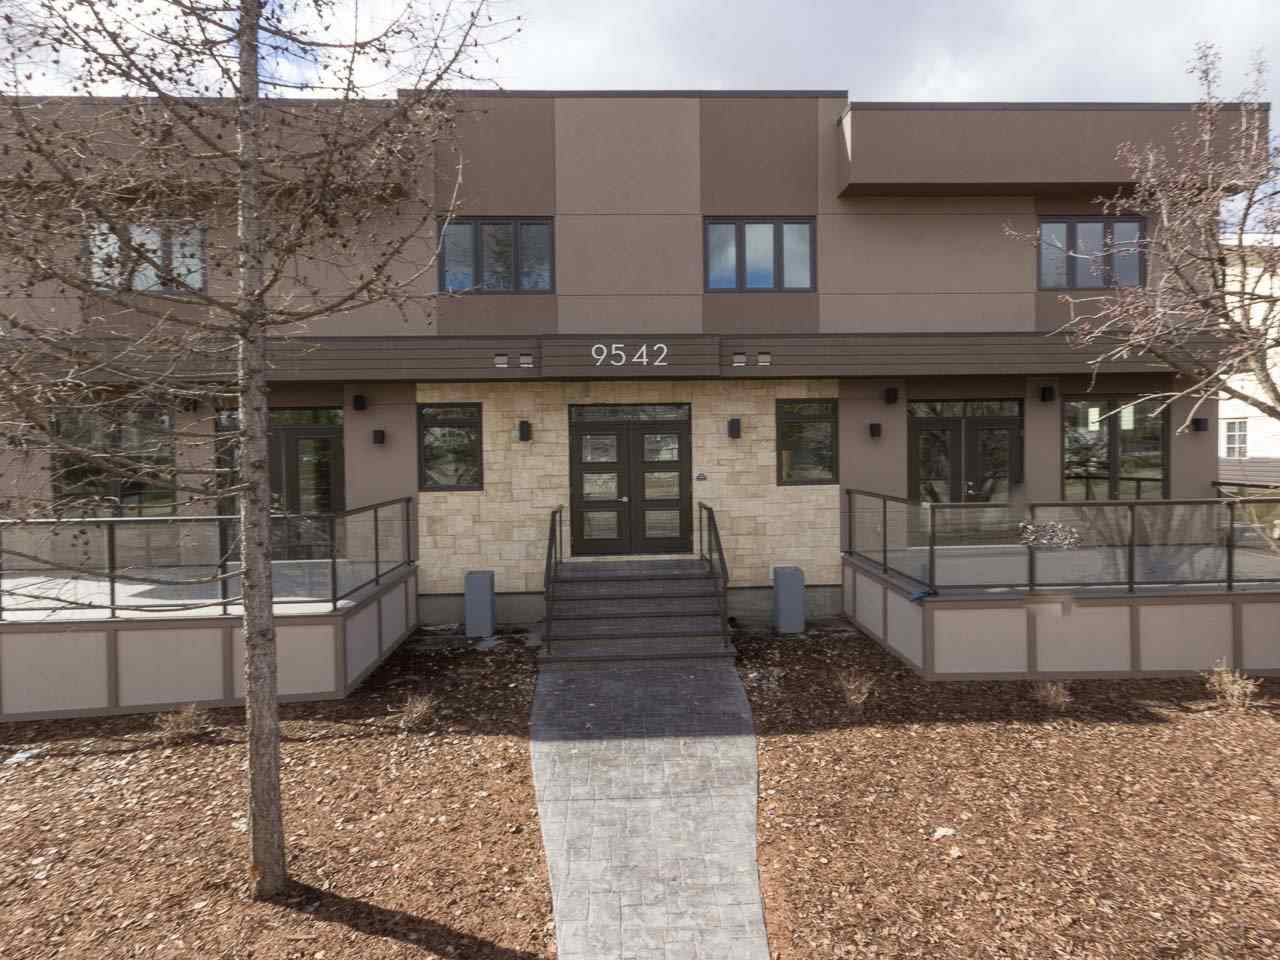 Main Photo: 1 9542 142 Street in Edmonton: Zone 10 Townhouse for sale : MLS(r) # E4058563